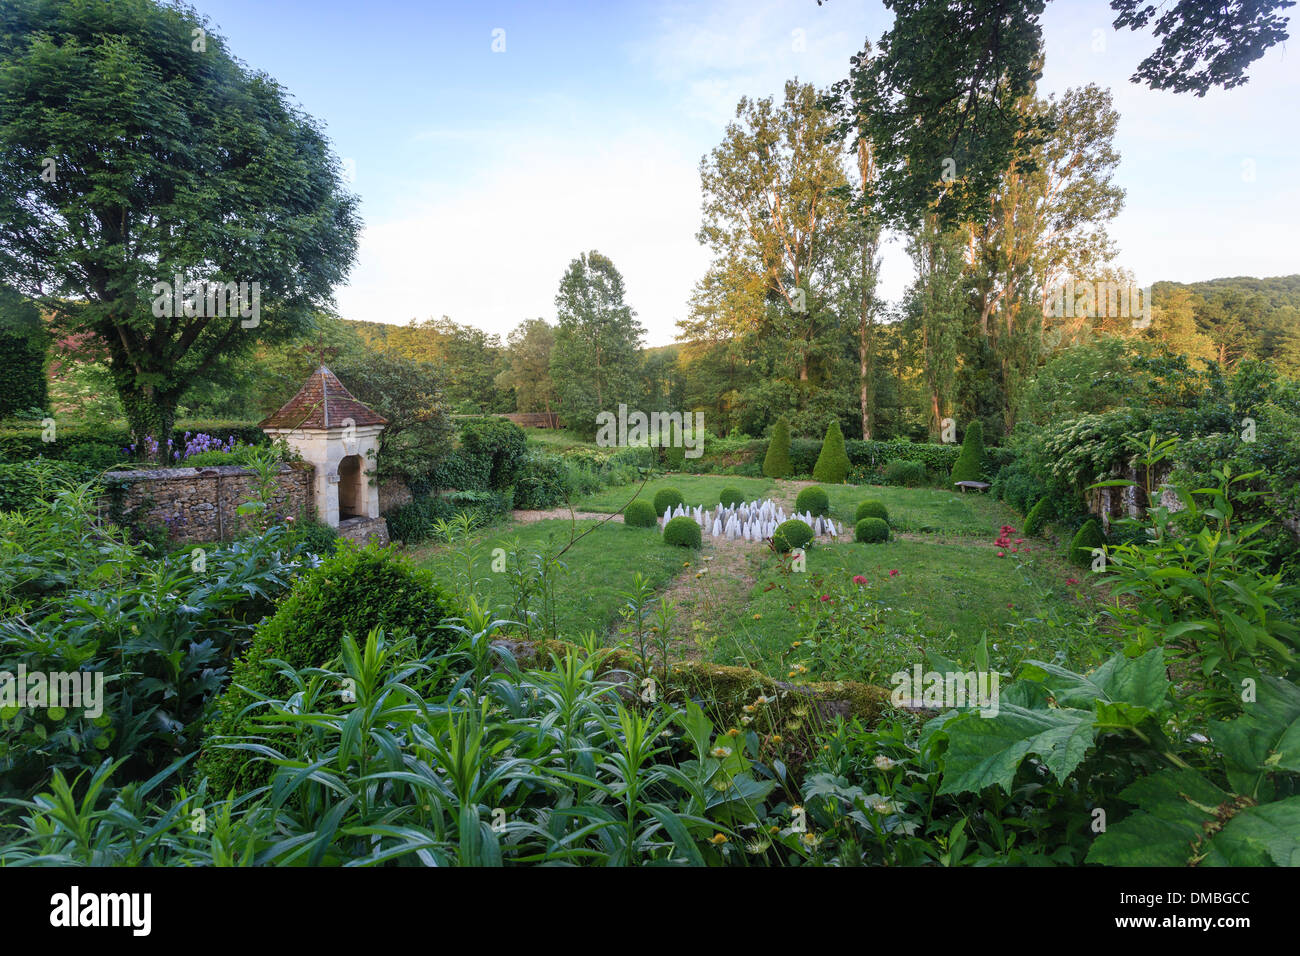 France, Orne, Monceaux au Perche, Pontgirard manor, the walled garden, with a central work, Spikes, by Mechthild Kalisky - Stock Image